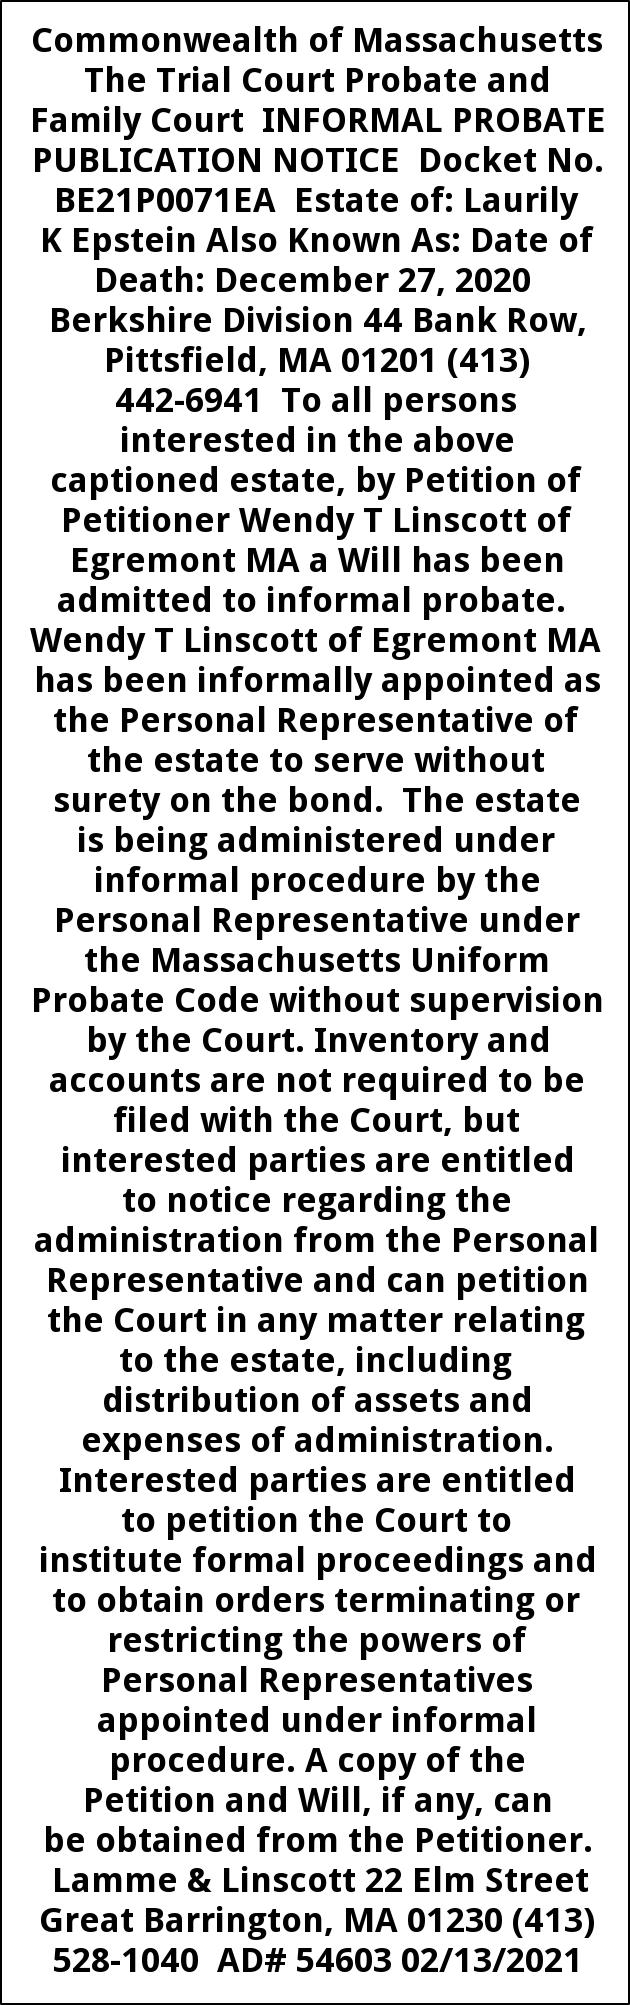 Informal Probate Publication Notice Docket No. BE21P0071EA